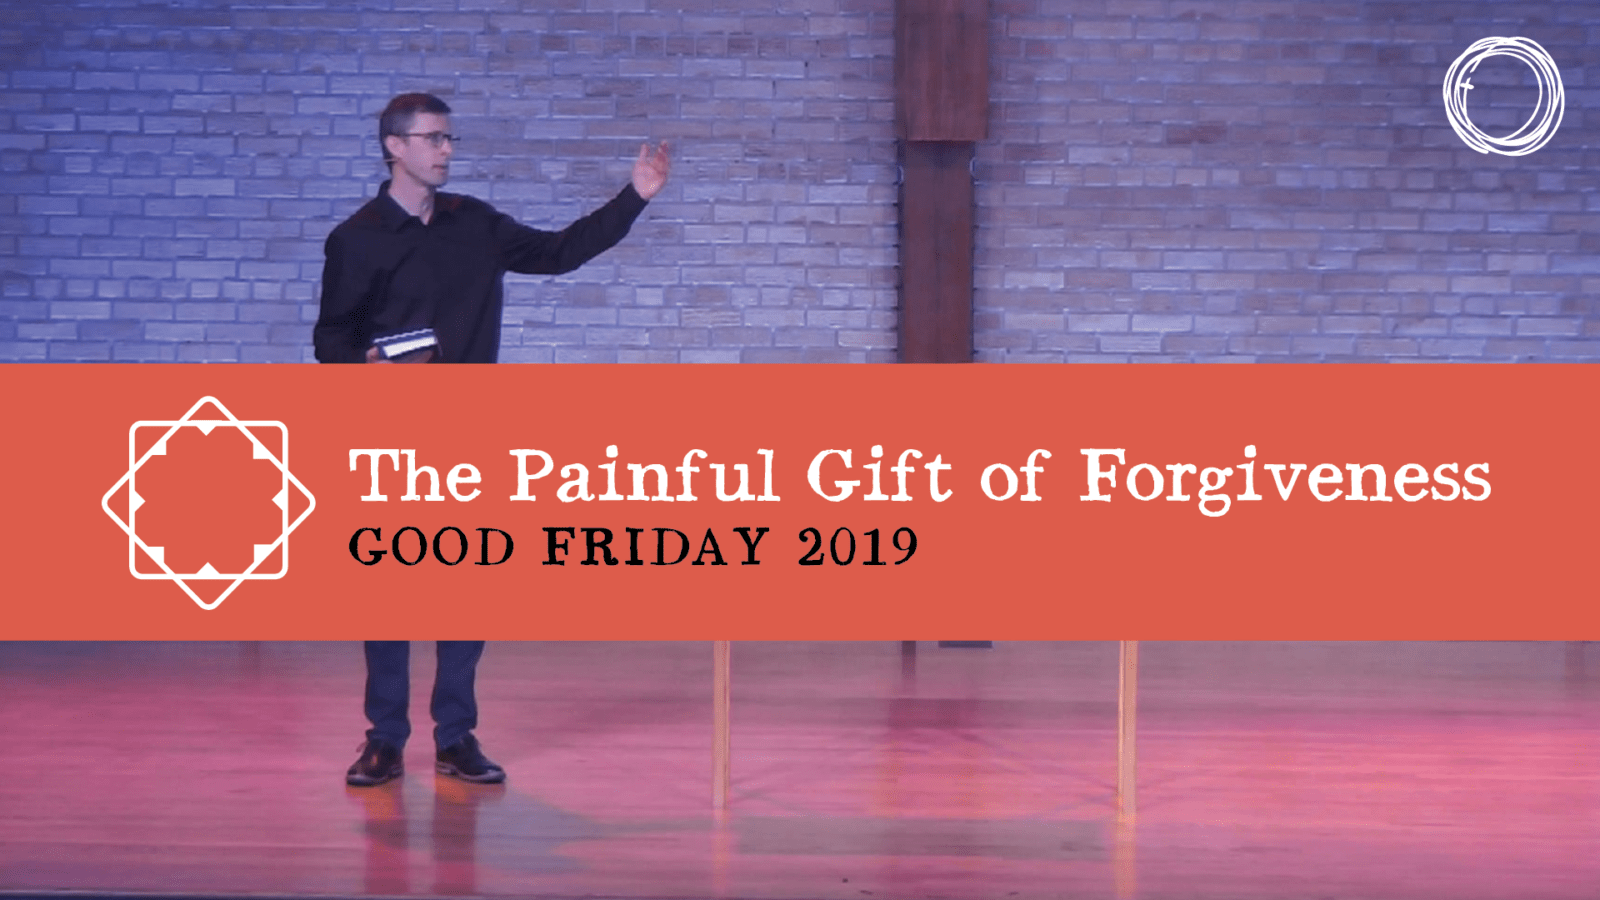 The Painful Gift of Forgiveness